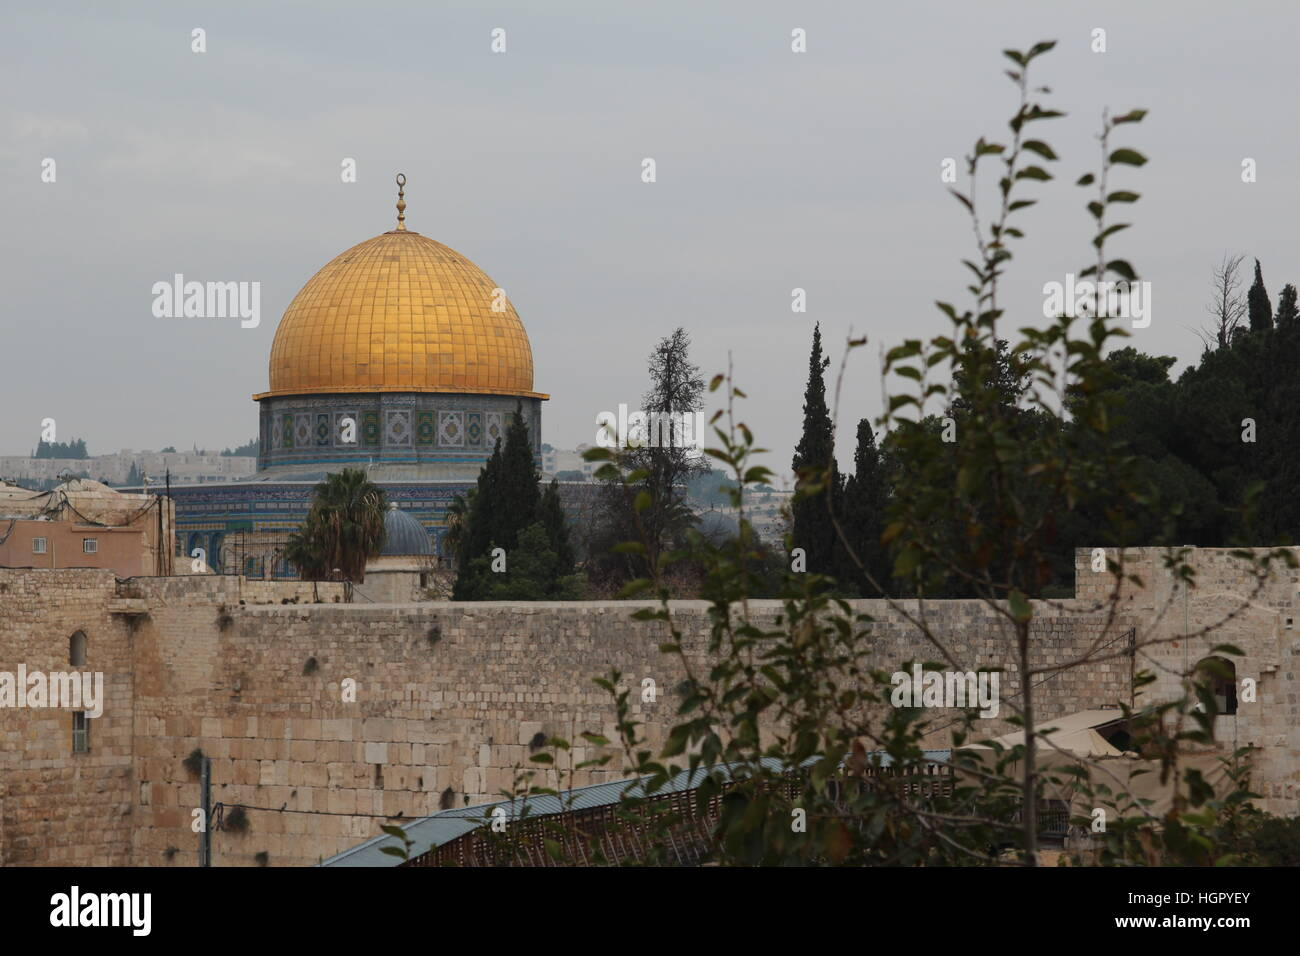 Dome of the Rock and Western Wall in Jerusalem - Stock Image